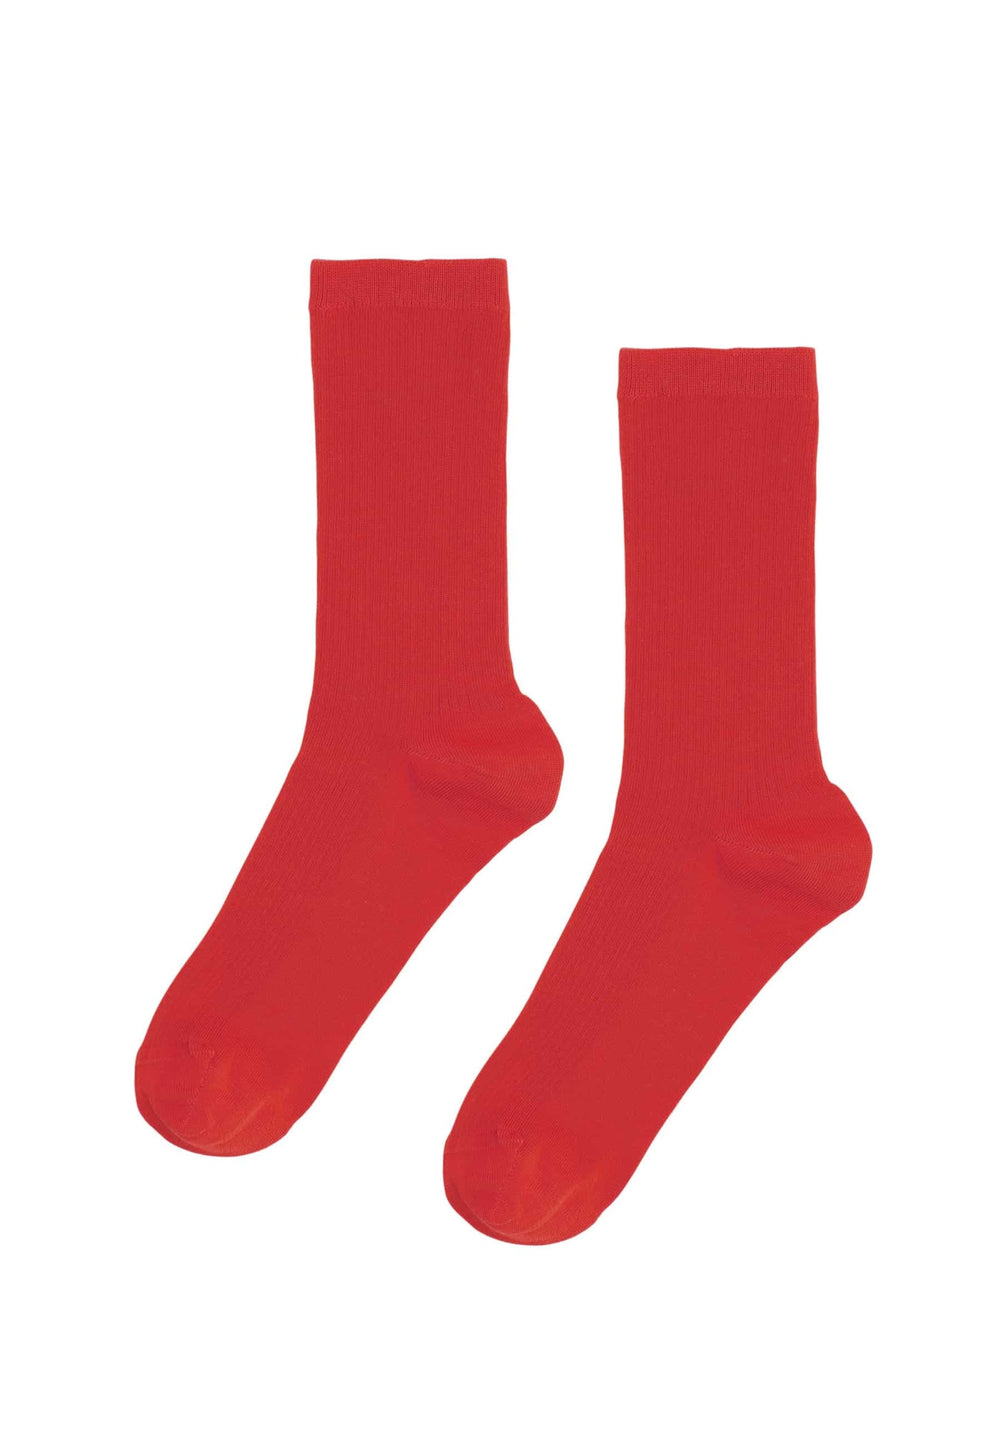 Colorful Standard Underwear Taille Unique Chaussettes Femme Classic Organic Scarlet Red